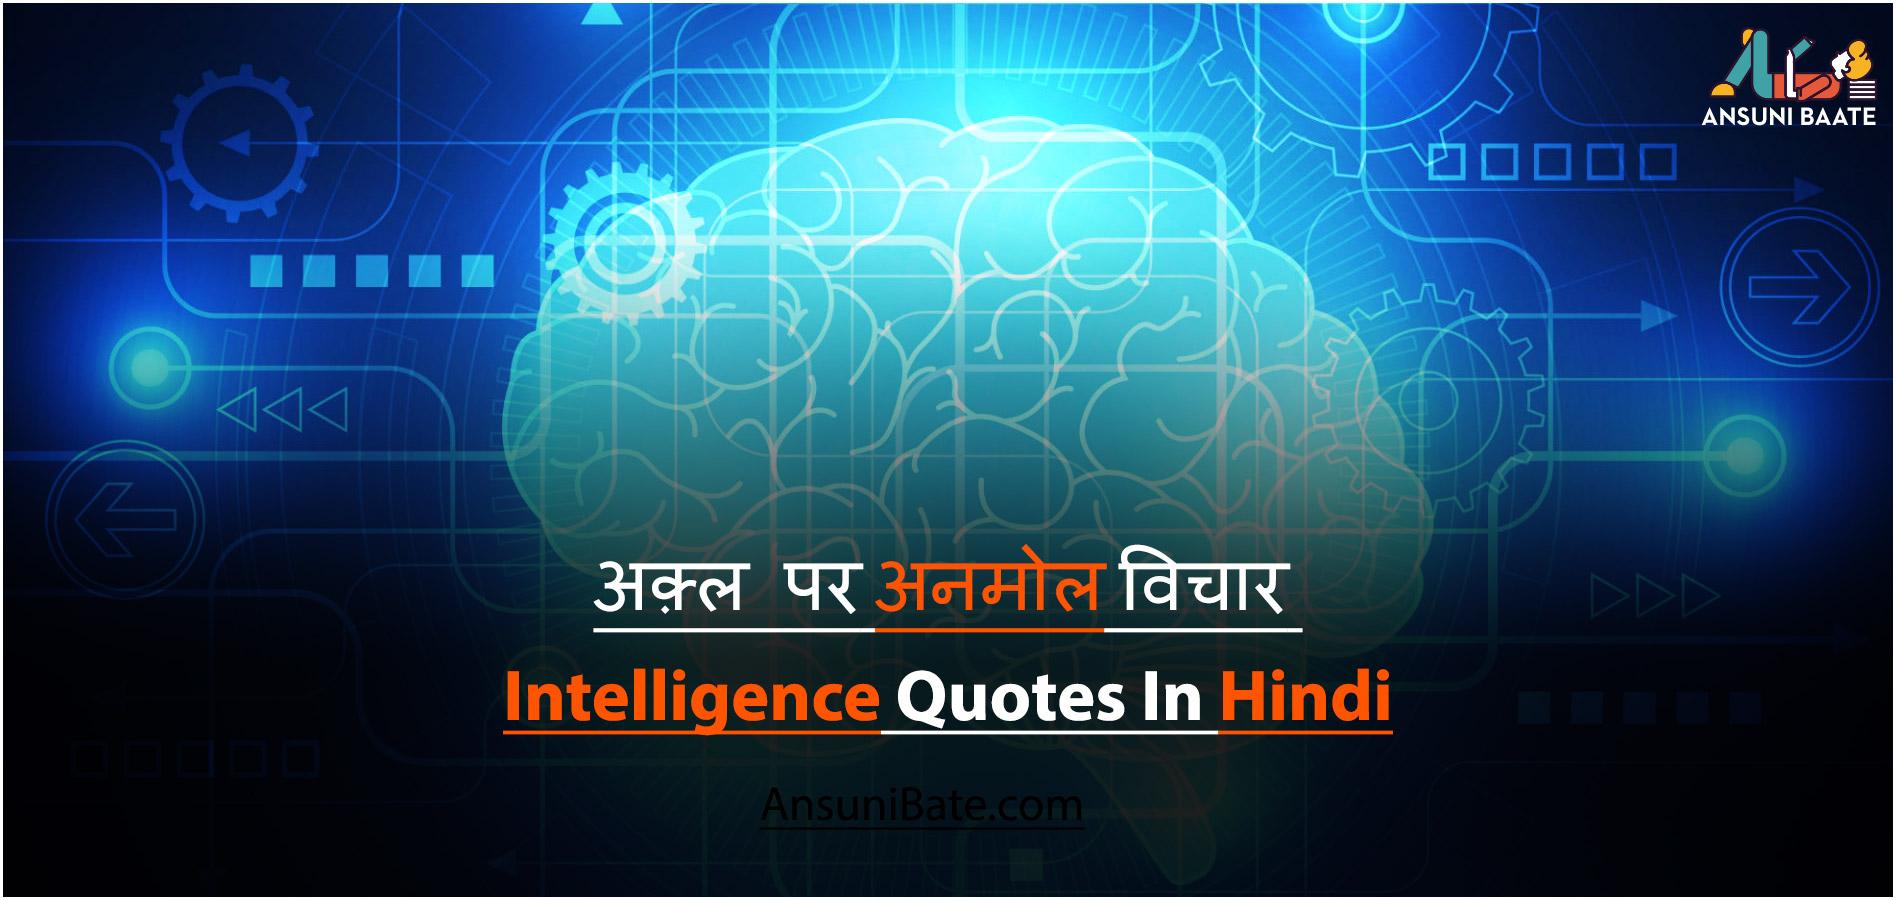 बुद्धि पर अनमोल विचार – Intelligence Quotes In Hindi